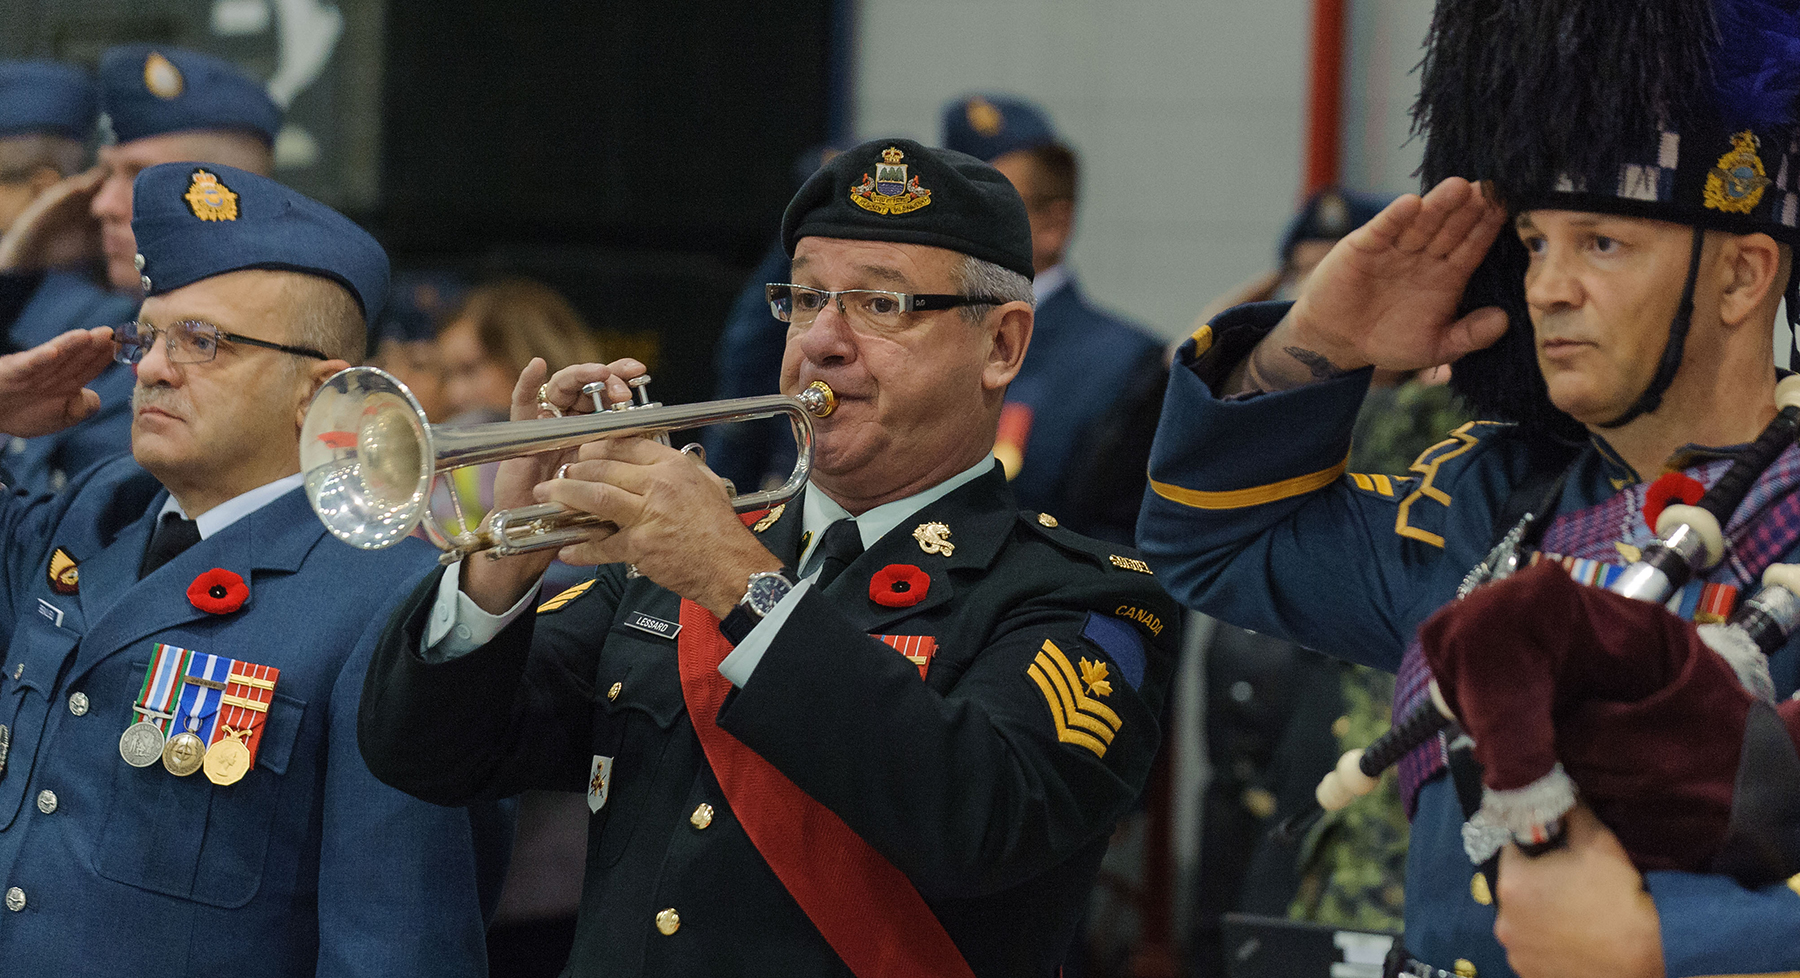 Sergeant André Lessard, Saguenay Regiment trumpet player, plays during the Remembrance Day ceremony held at Canadian Forces Base Bagotville, in Québec, on November 11, 2016. PHOTO: Master Corporal Louis Brunet